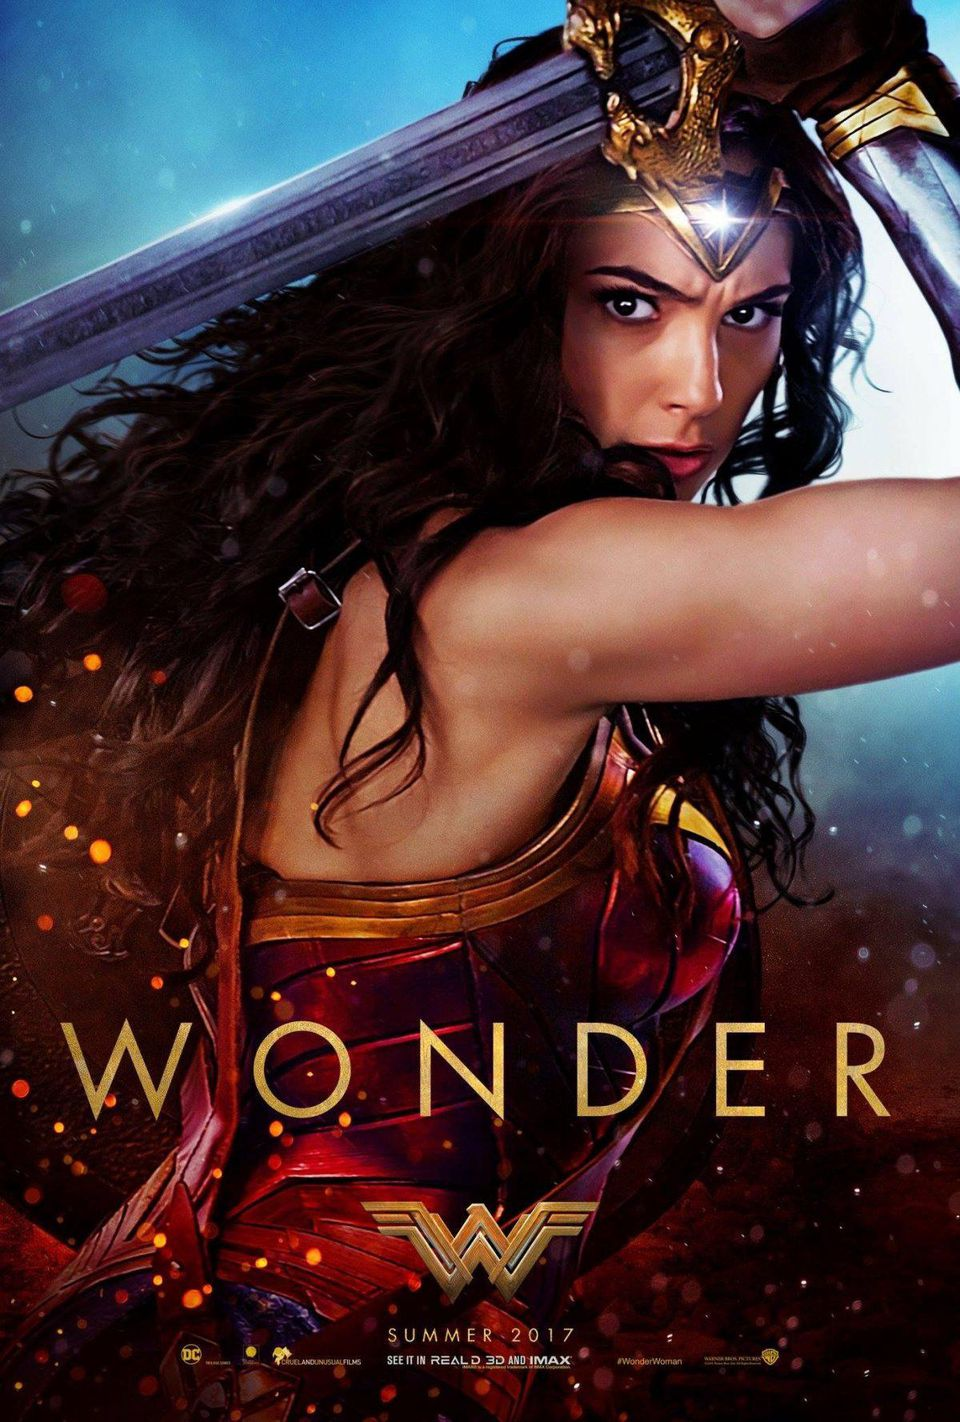 https_%2F%2Fblogs-images.forbes.com%2Fmarkhughes%2Ffiles%2F2016%2F11%2FWONDER-WOMAN-poster-100-1200x1778.jpg